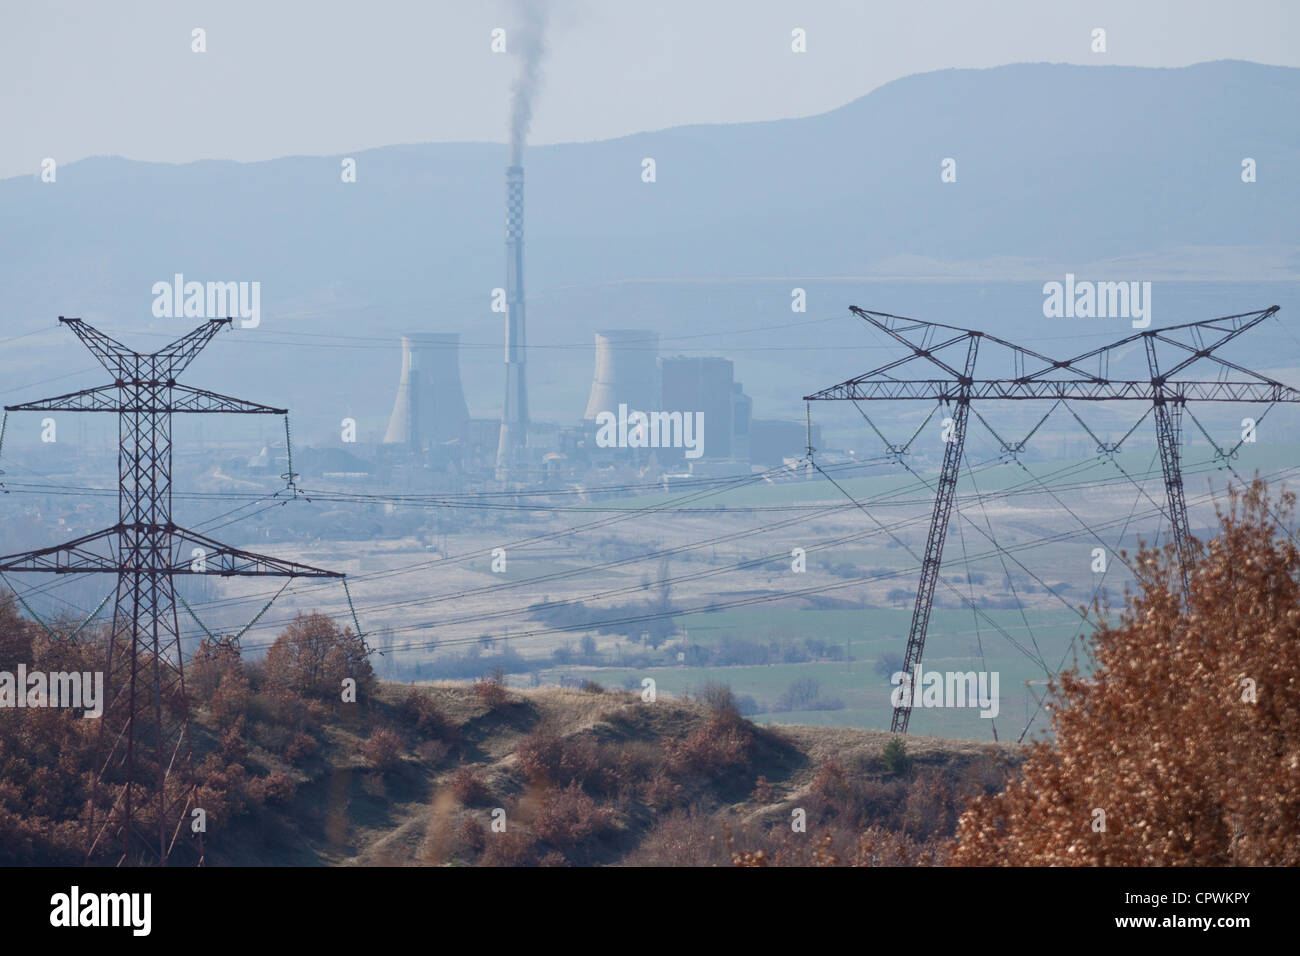 The Bobov Dol power plant producing a column of black smoke, seen between to electric pylons from a hill nearby - Stock Image